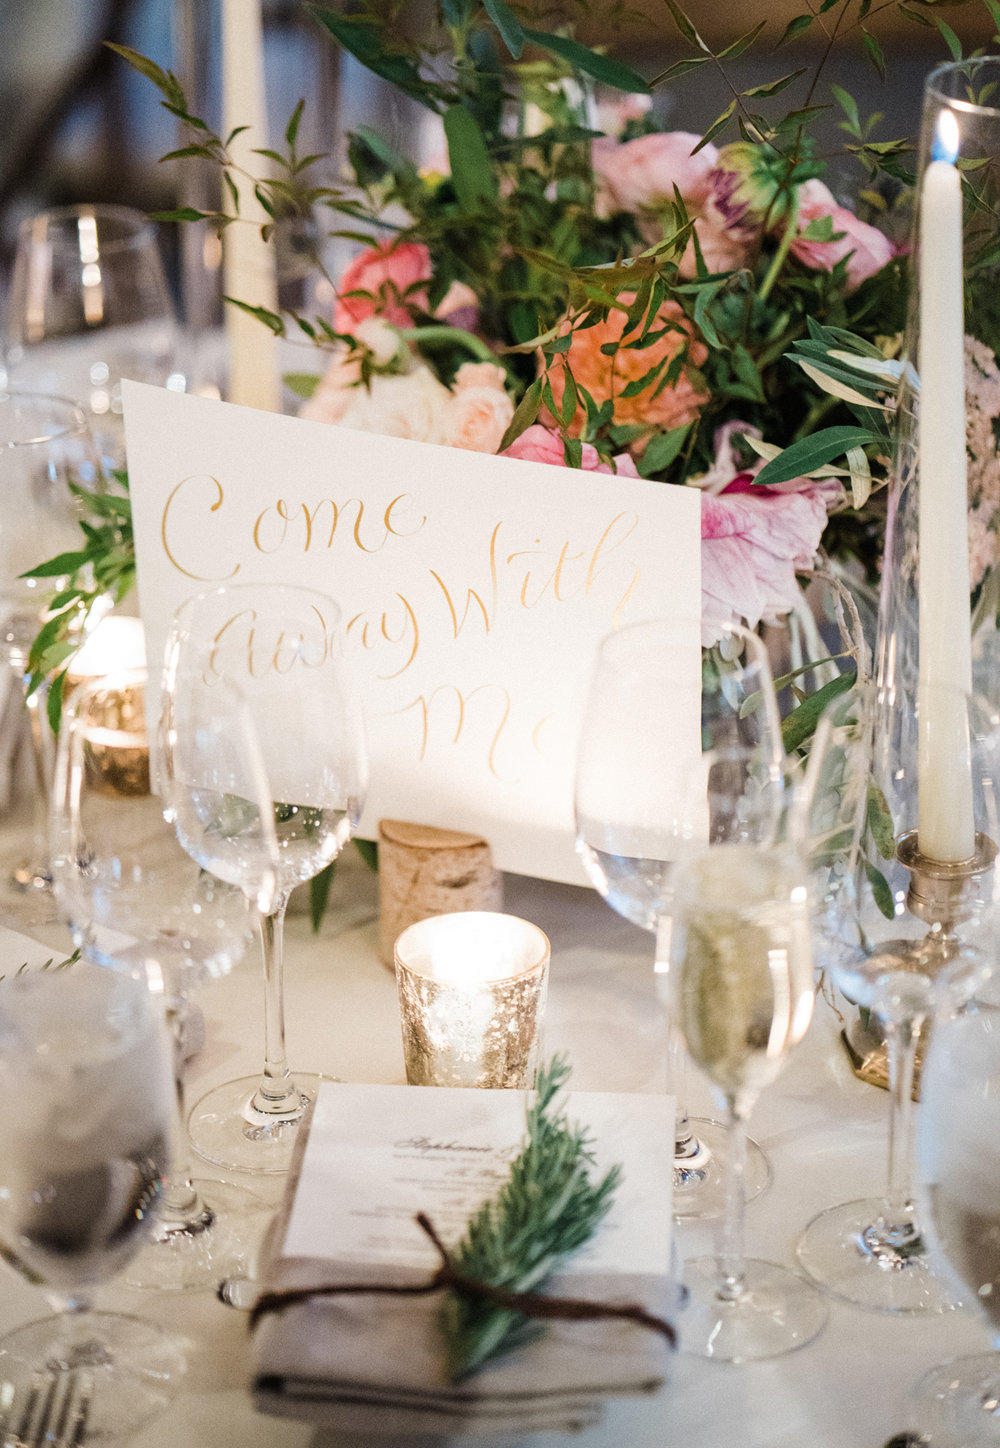 Song titles as table numbers, handwritten in calligraphy   www.chavelli.com